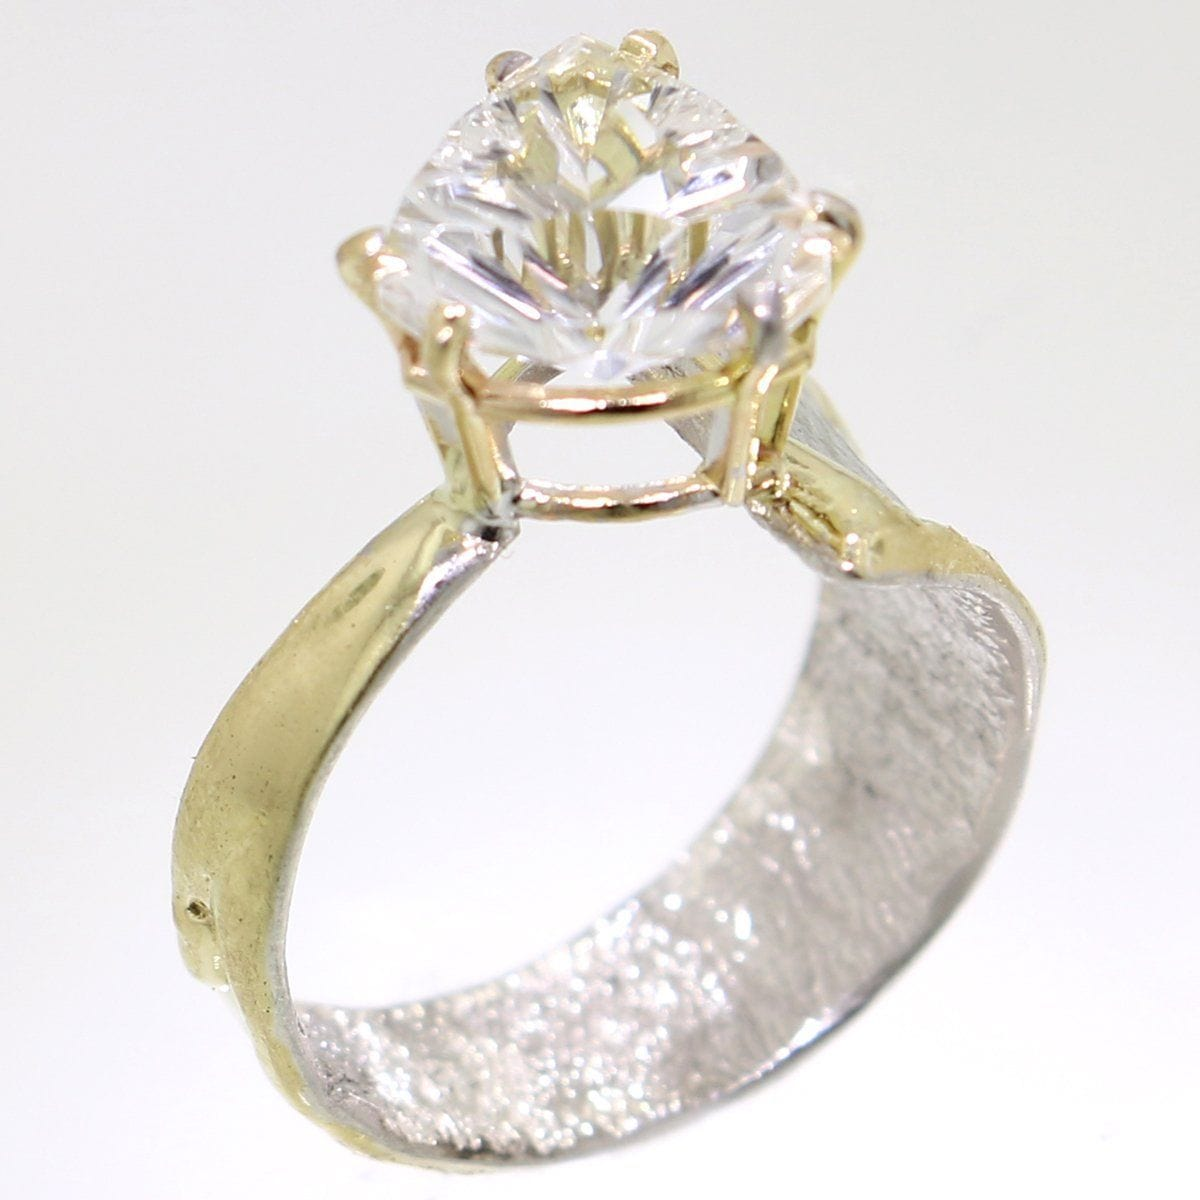 Crystalline Silvers: 14K Gold & Crystalline Silver White Topaz Ring